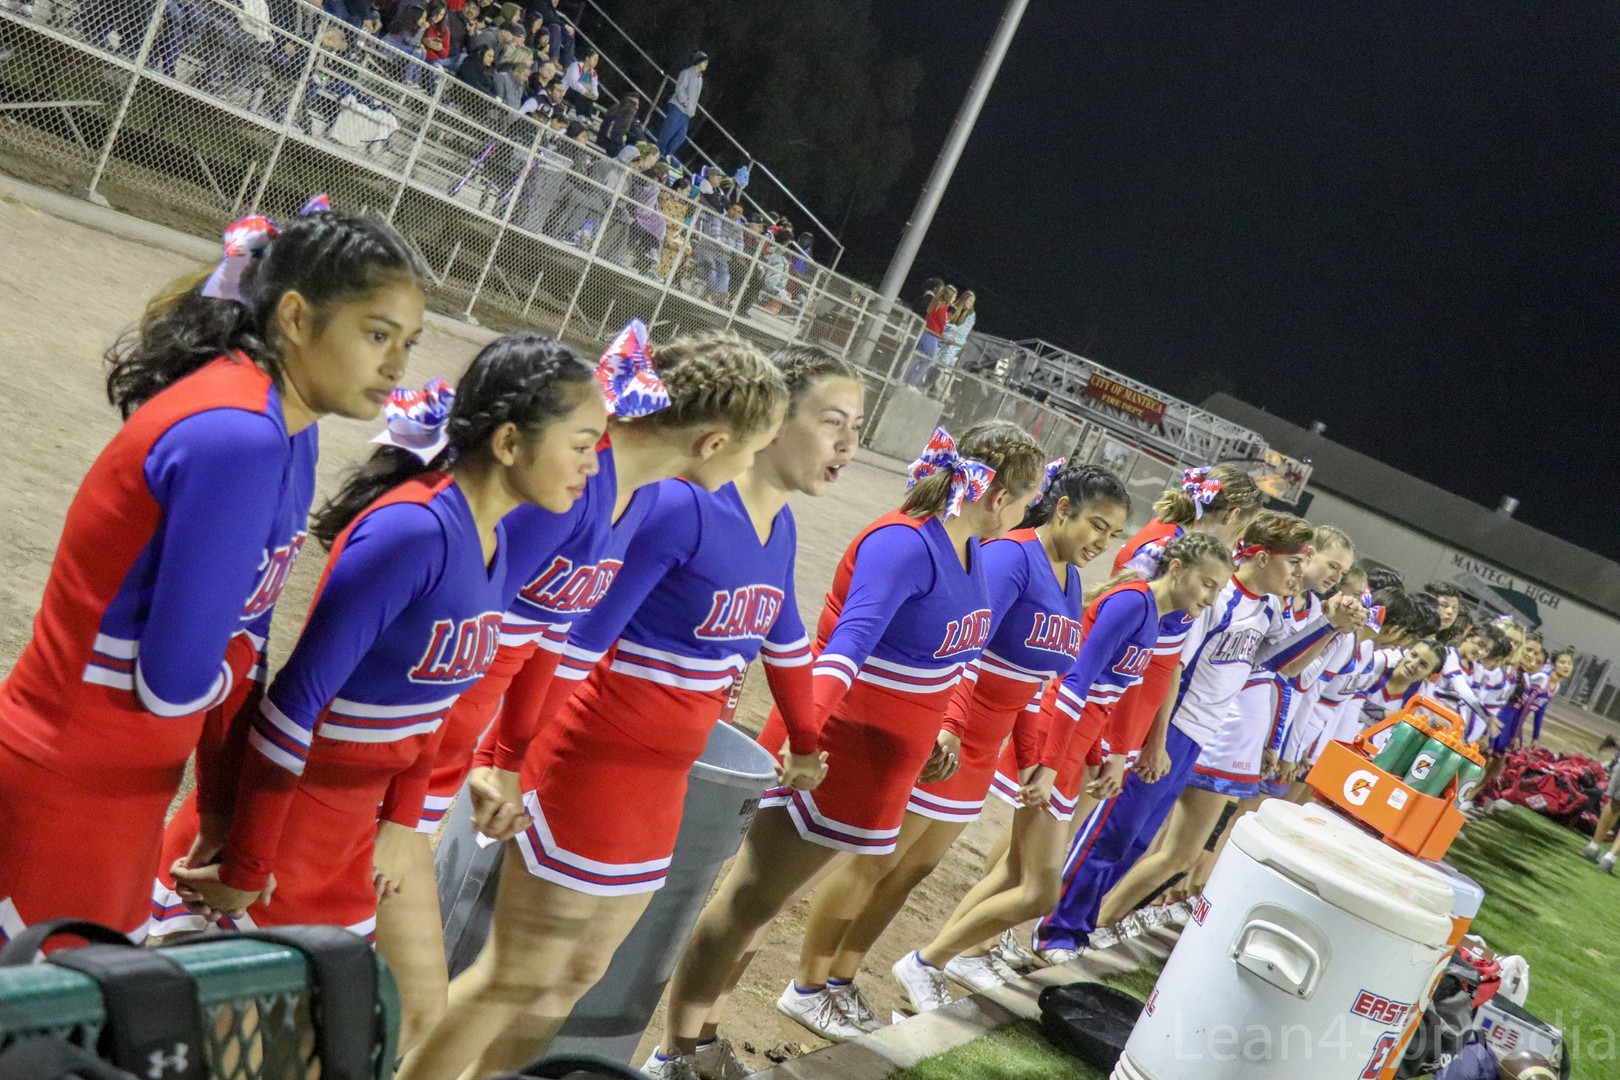 EU Vs. Manteca [Cheer]-80.JPG